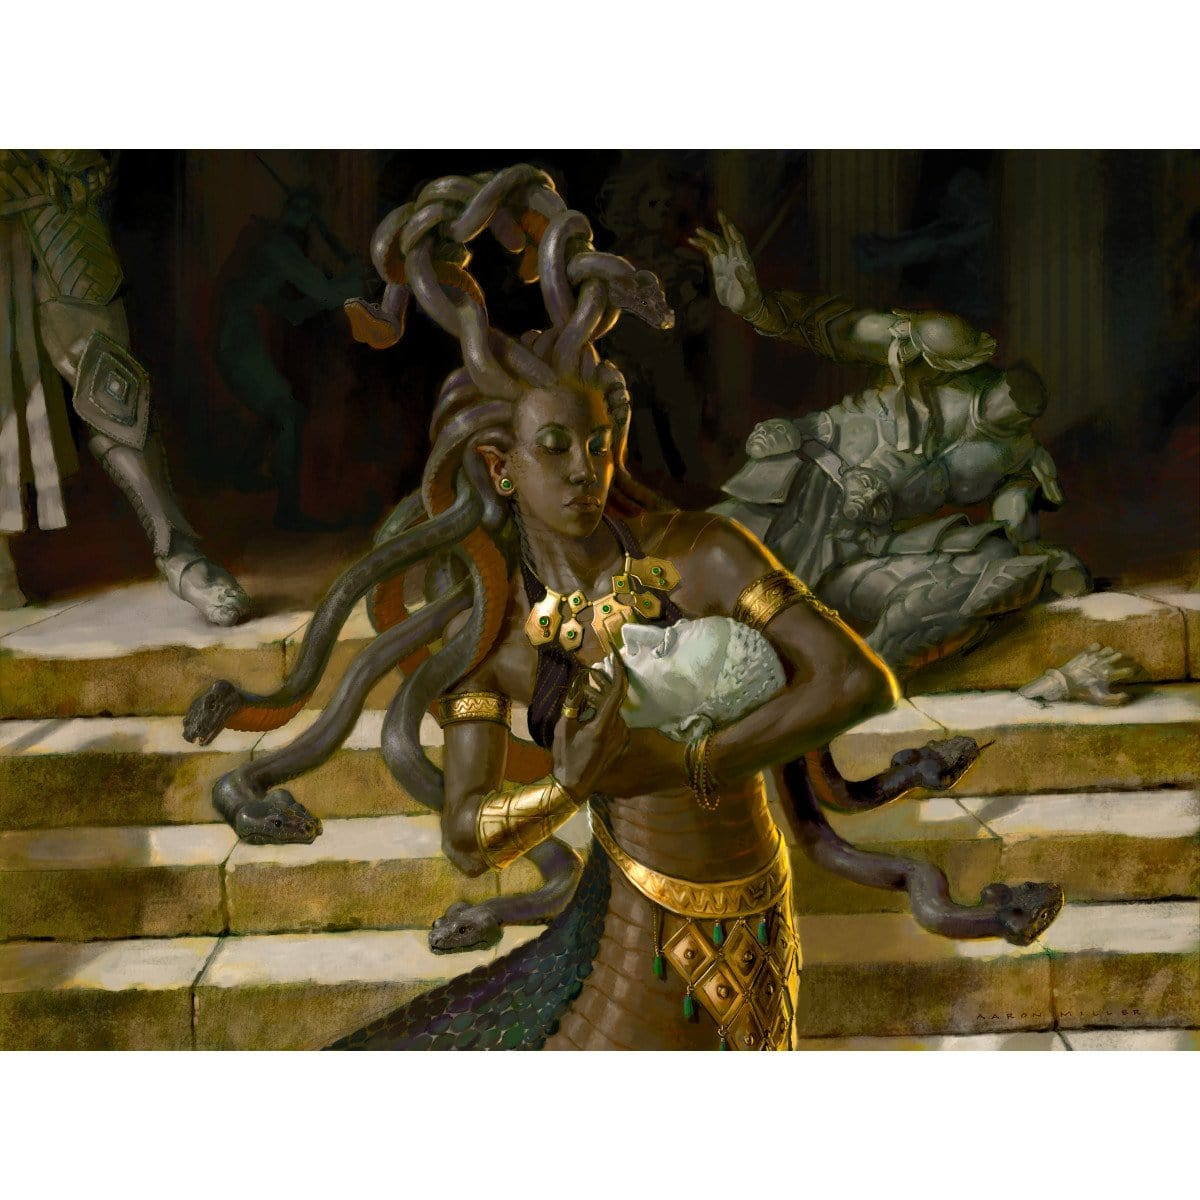 Keepsake Gorgon Print - Print - Original Magic Art - Accessories for Magic the Gathering and other card games